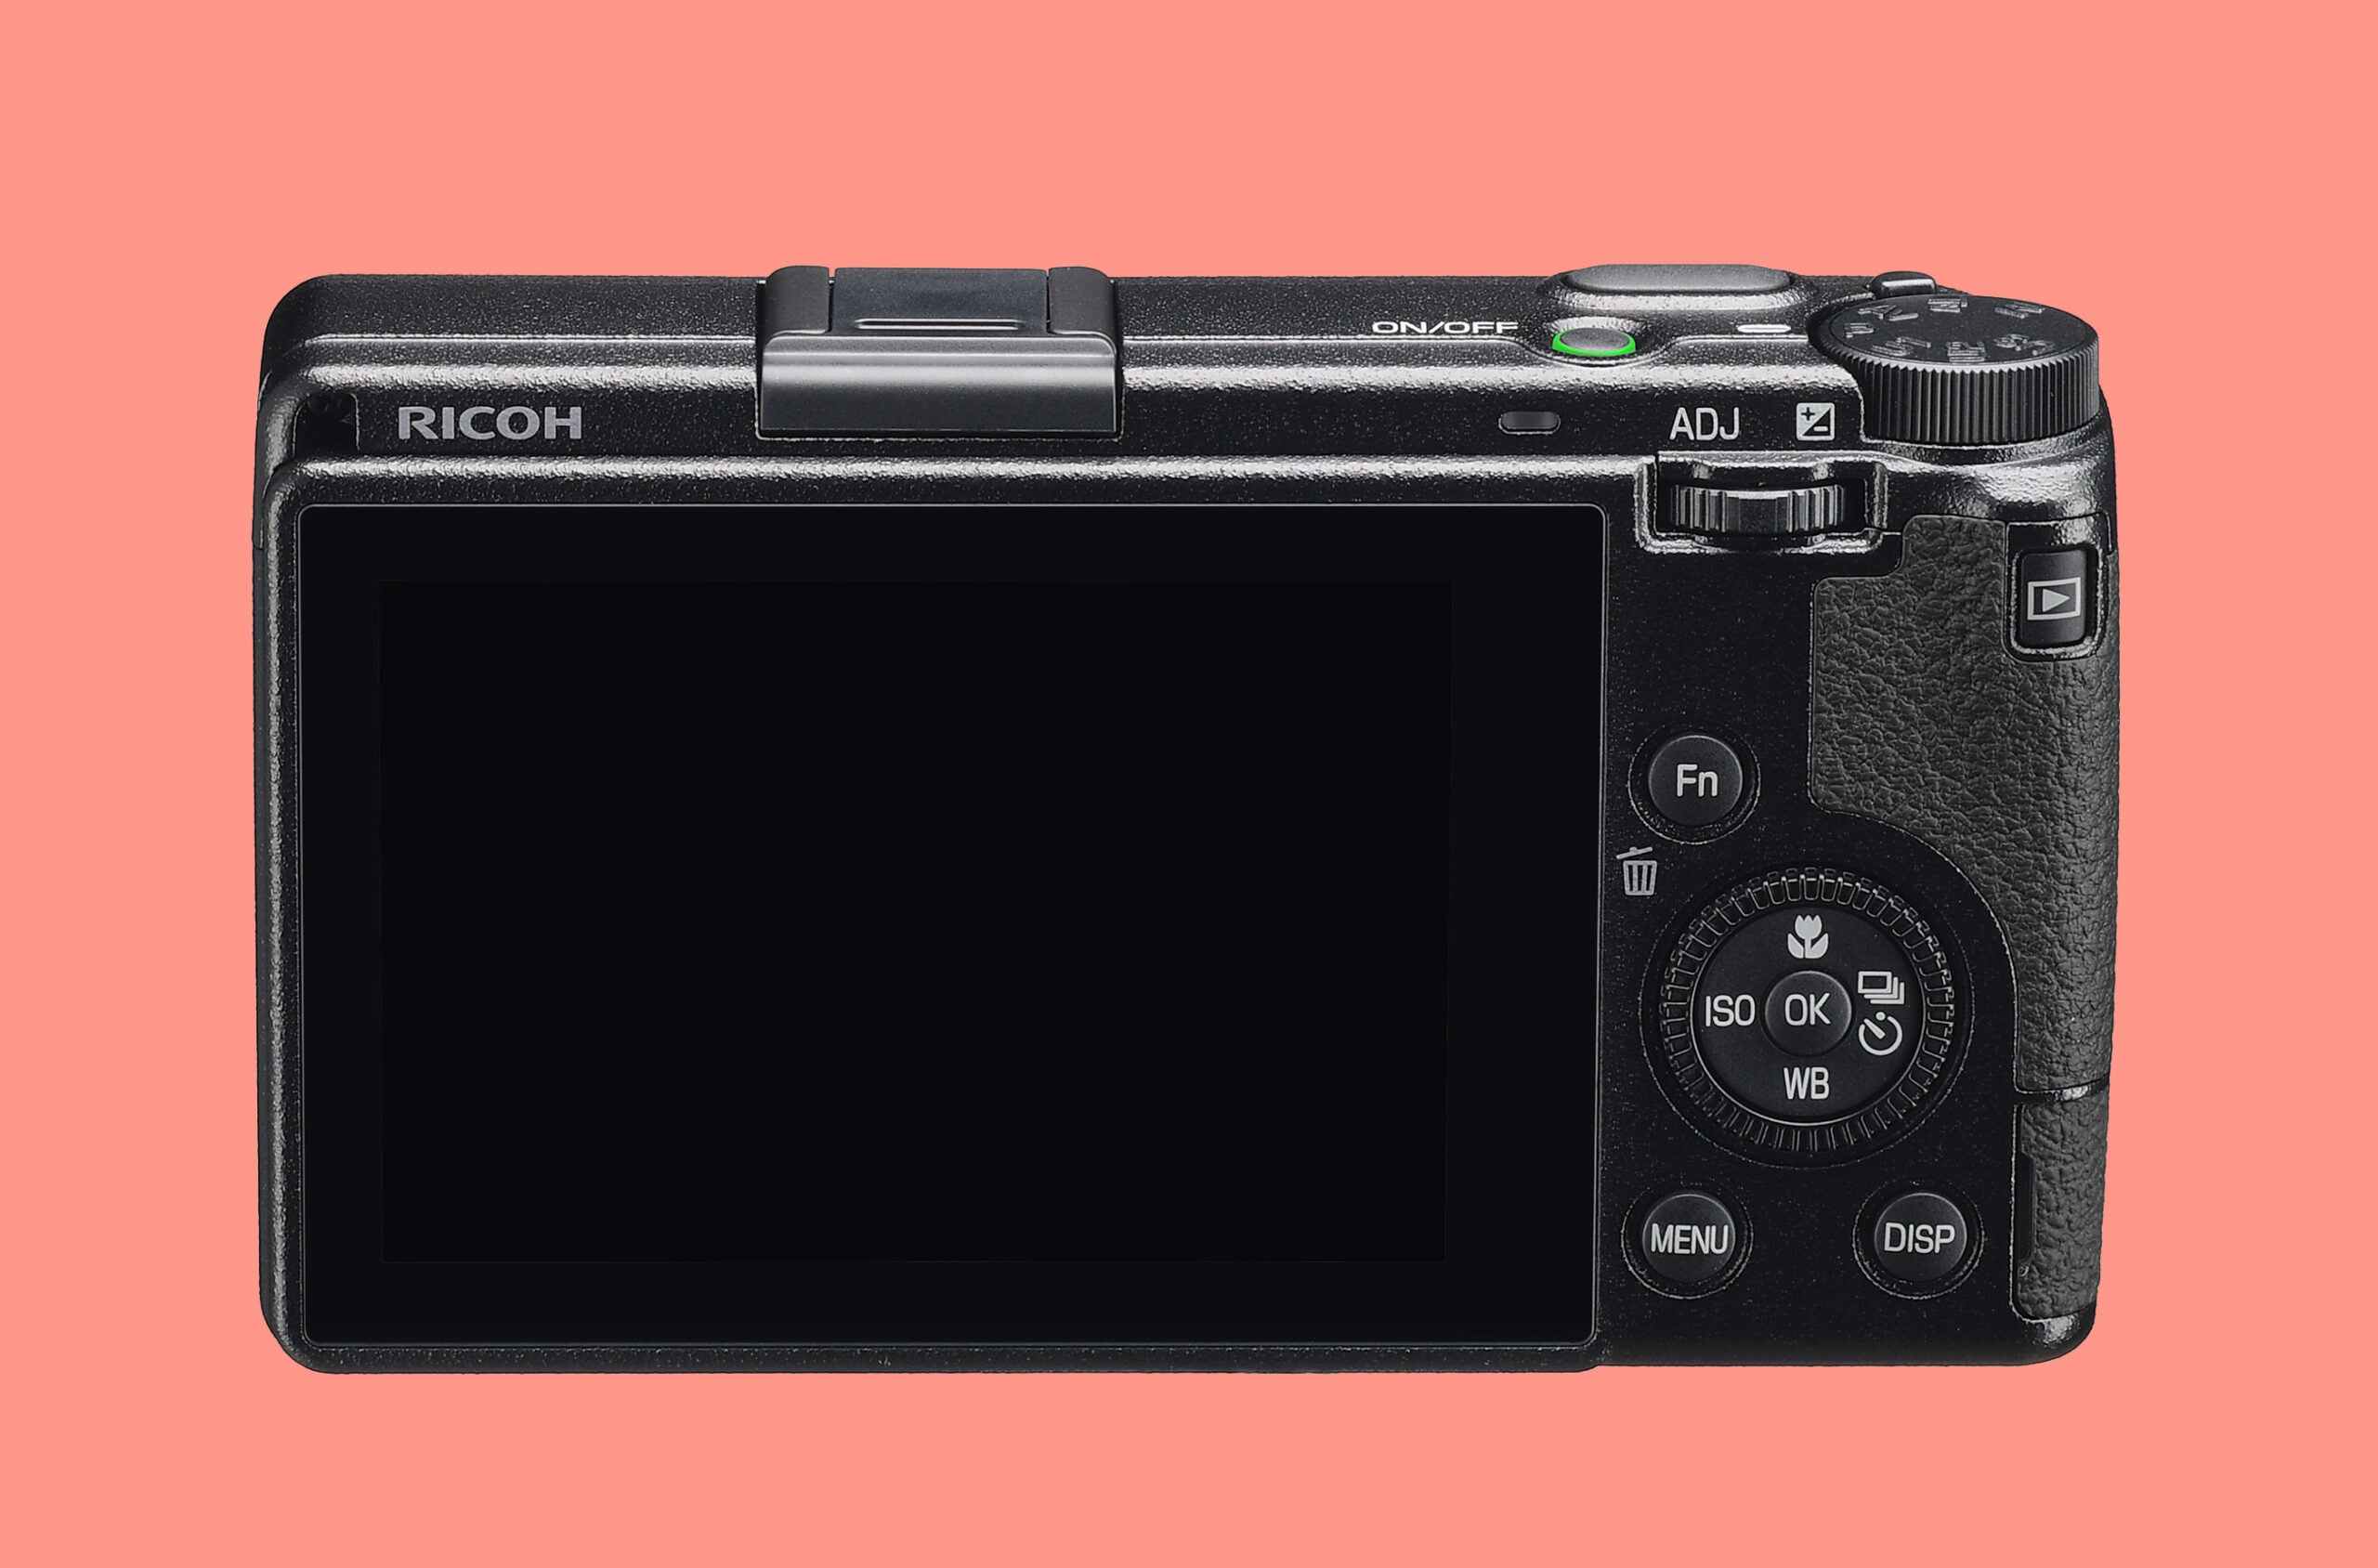 The rear of the new Ricoh GR IIIx